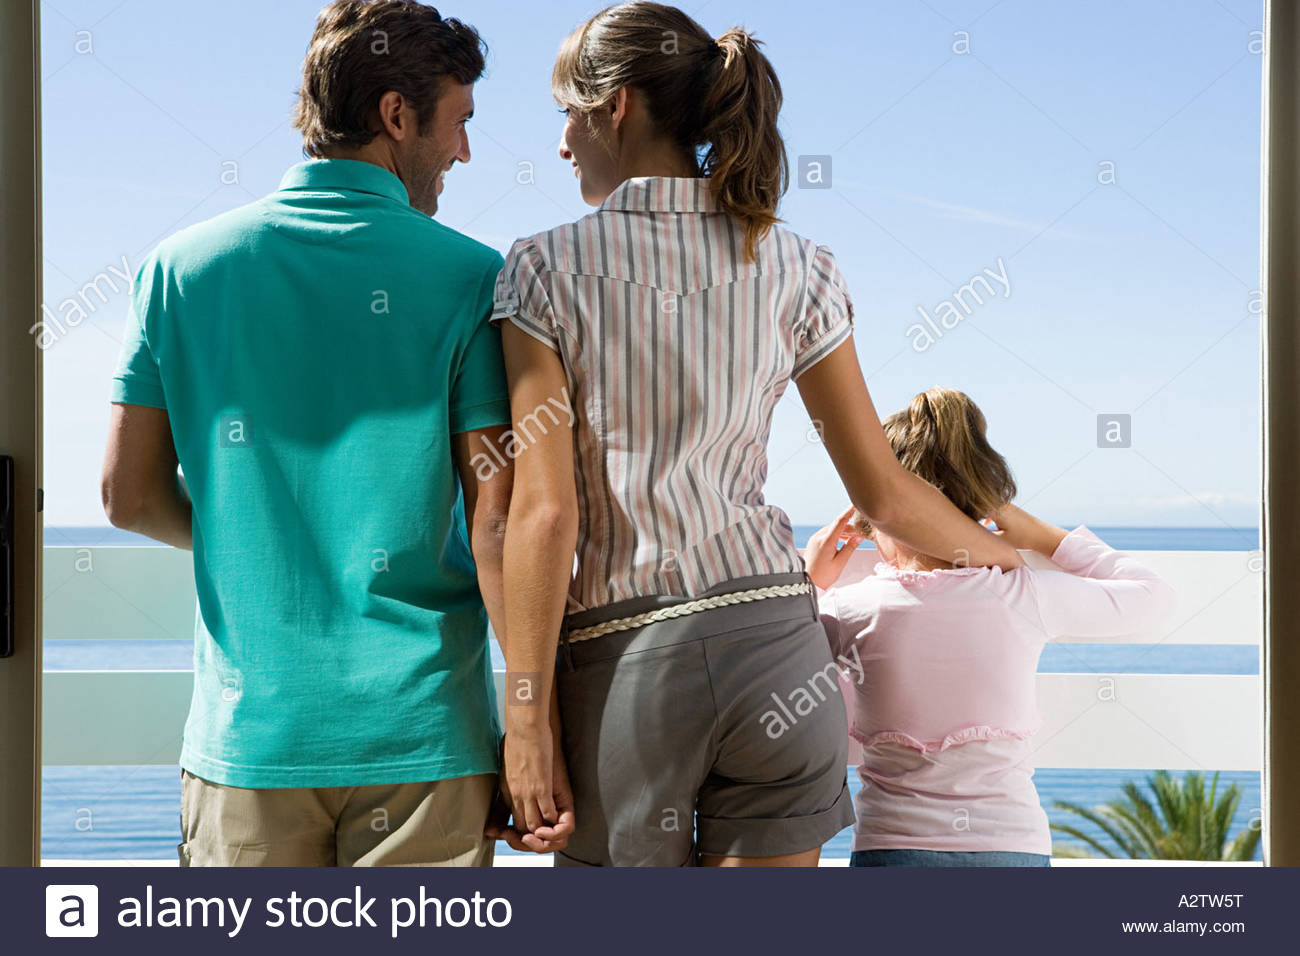 Family standing on a balcony - Stock Image